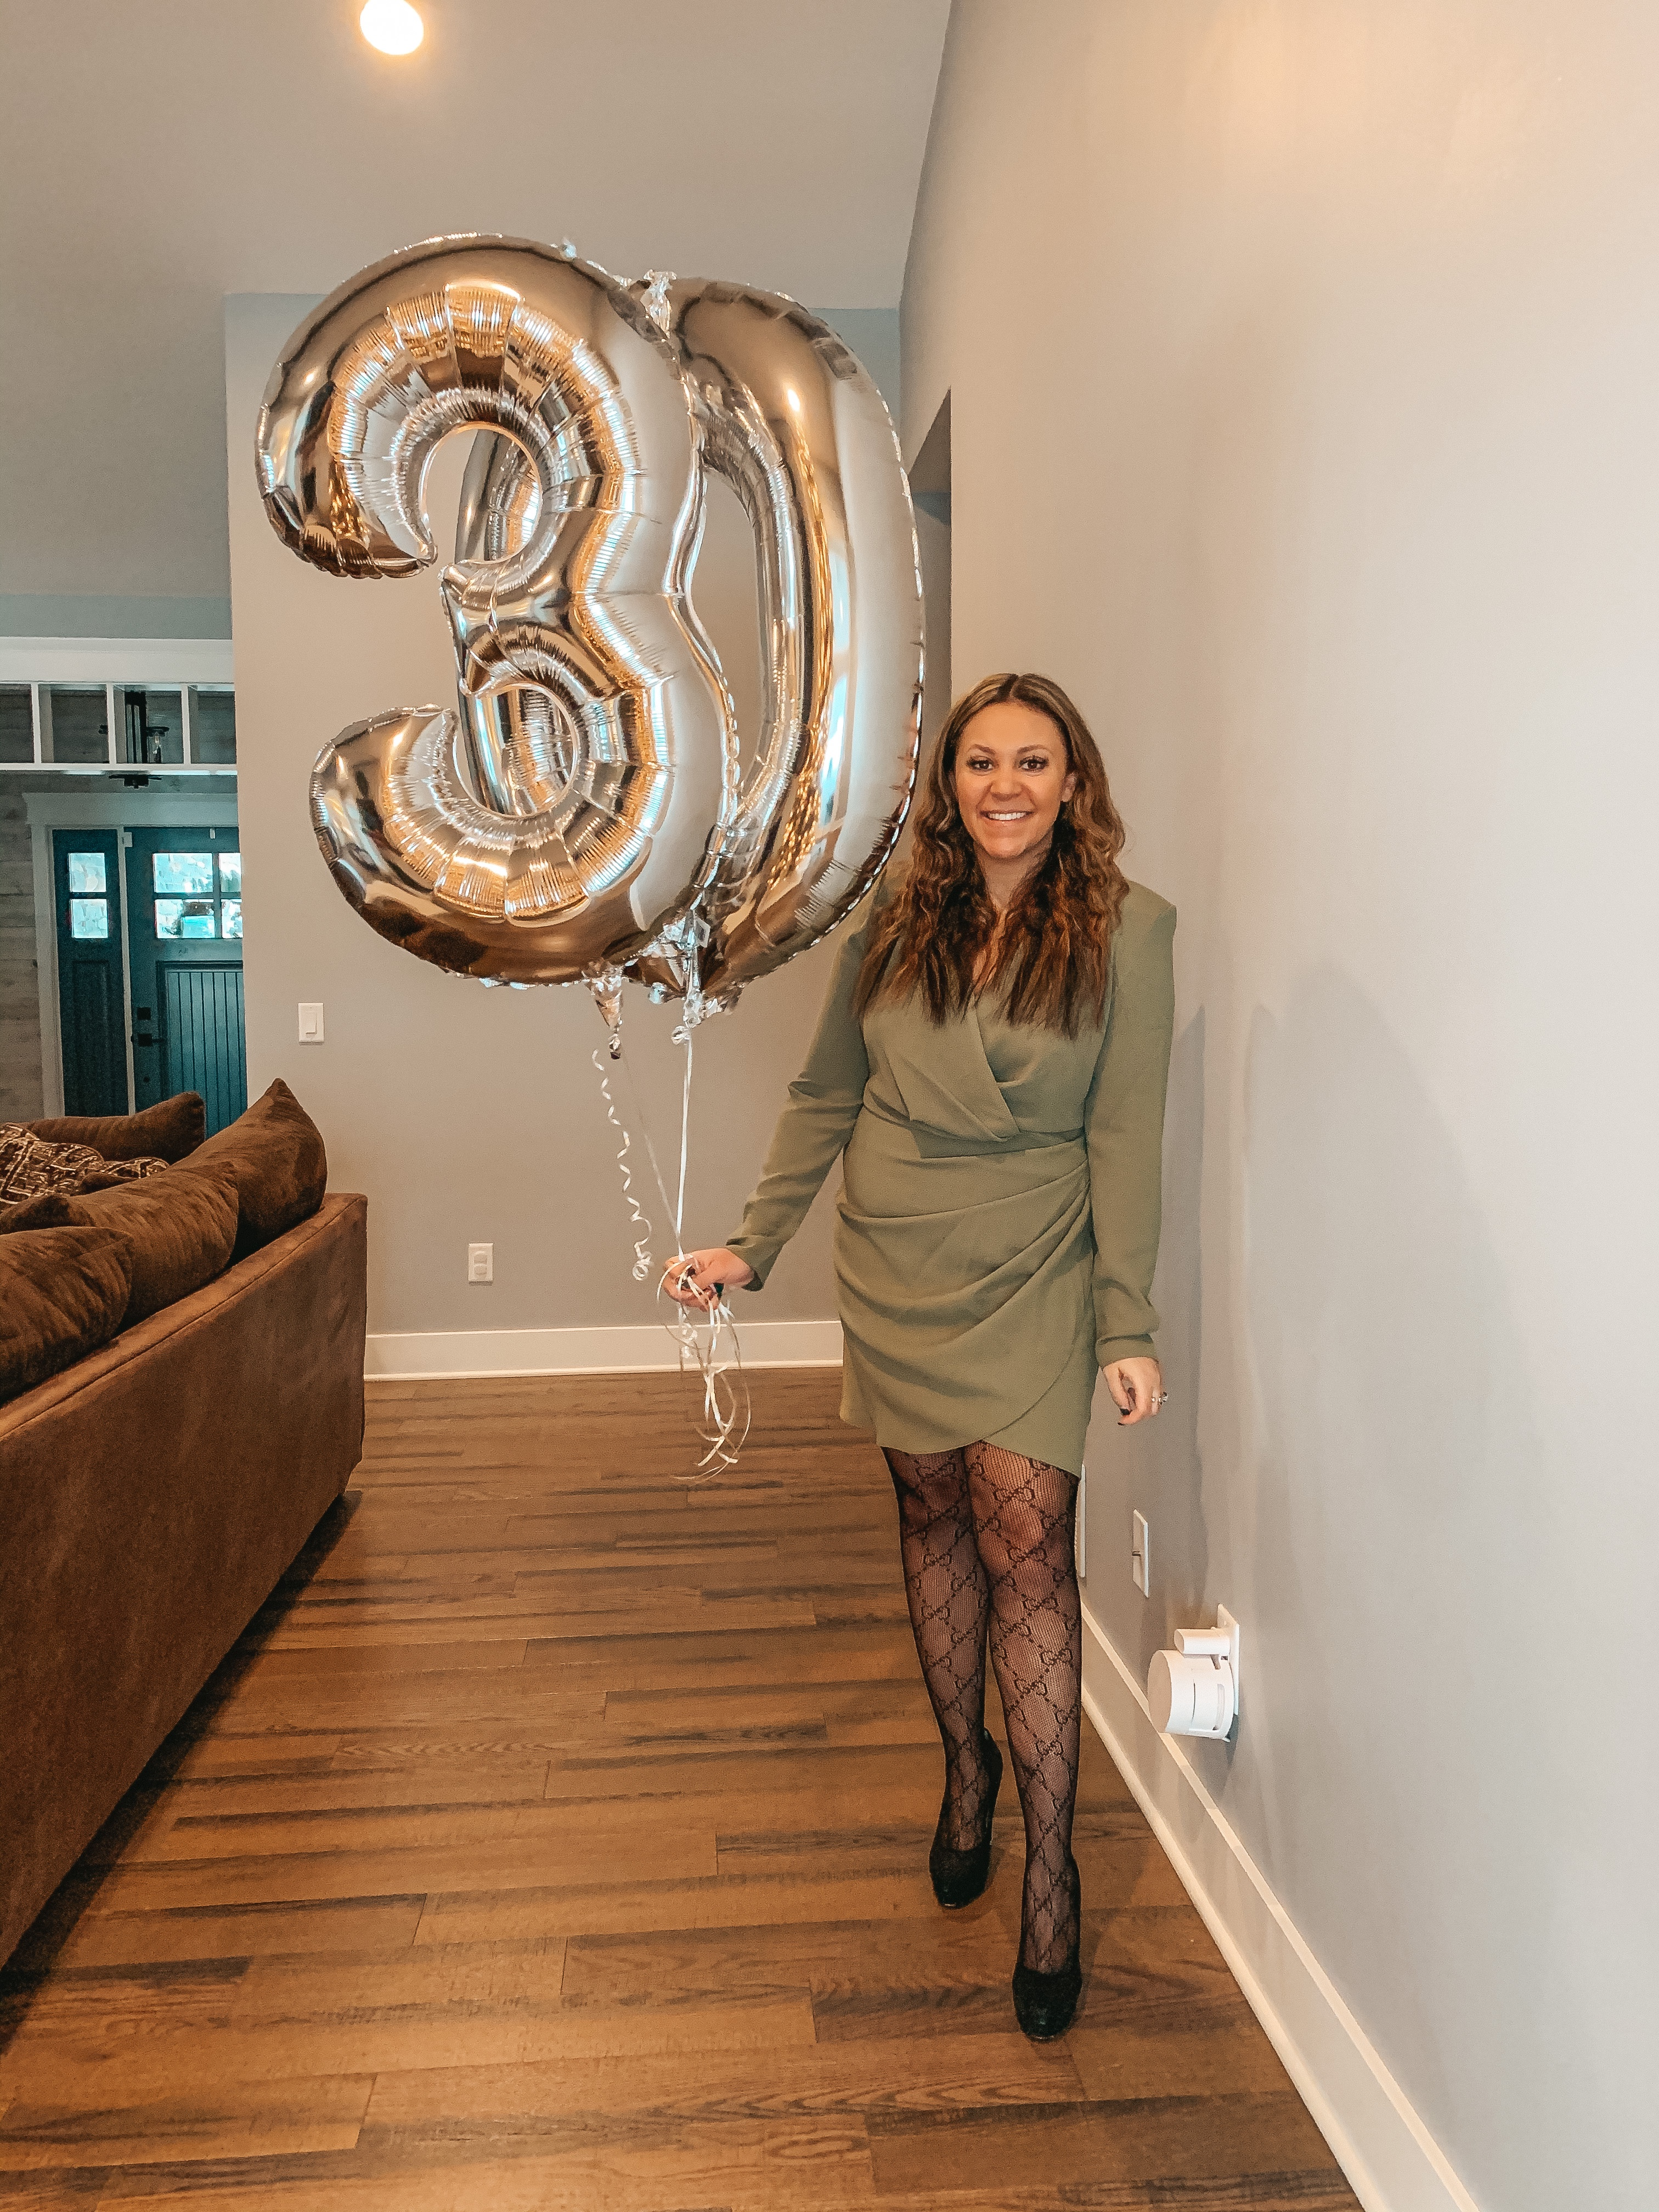 30 things I've learned since turning 30